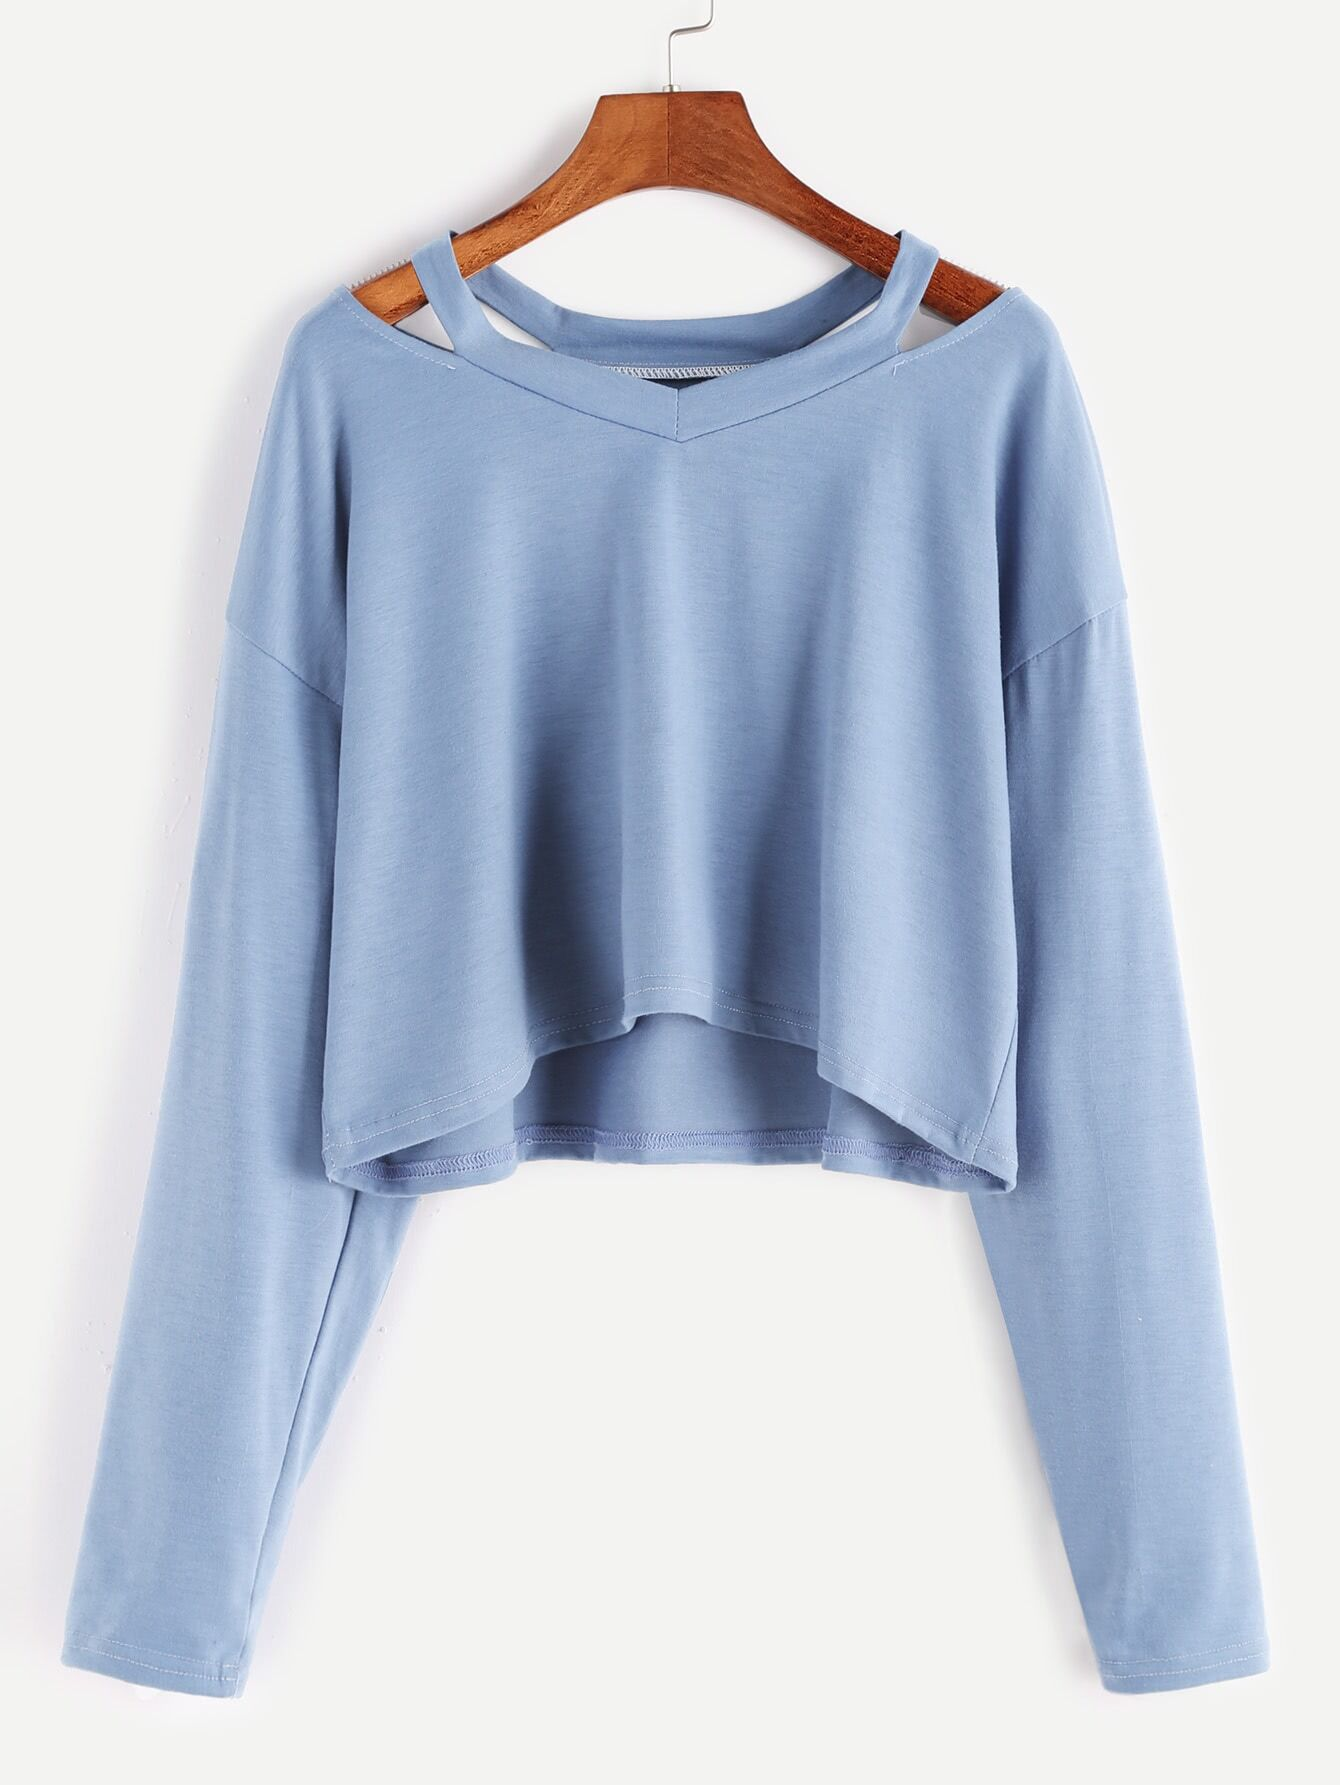 Blue Cut Out Neck Crop T-shirt цена и фото